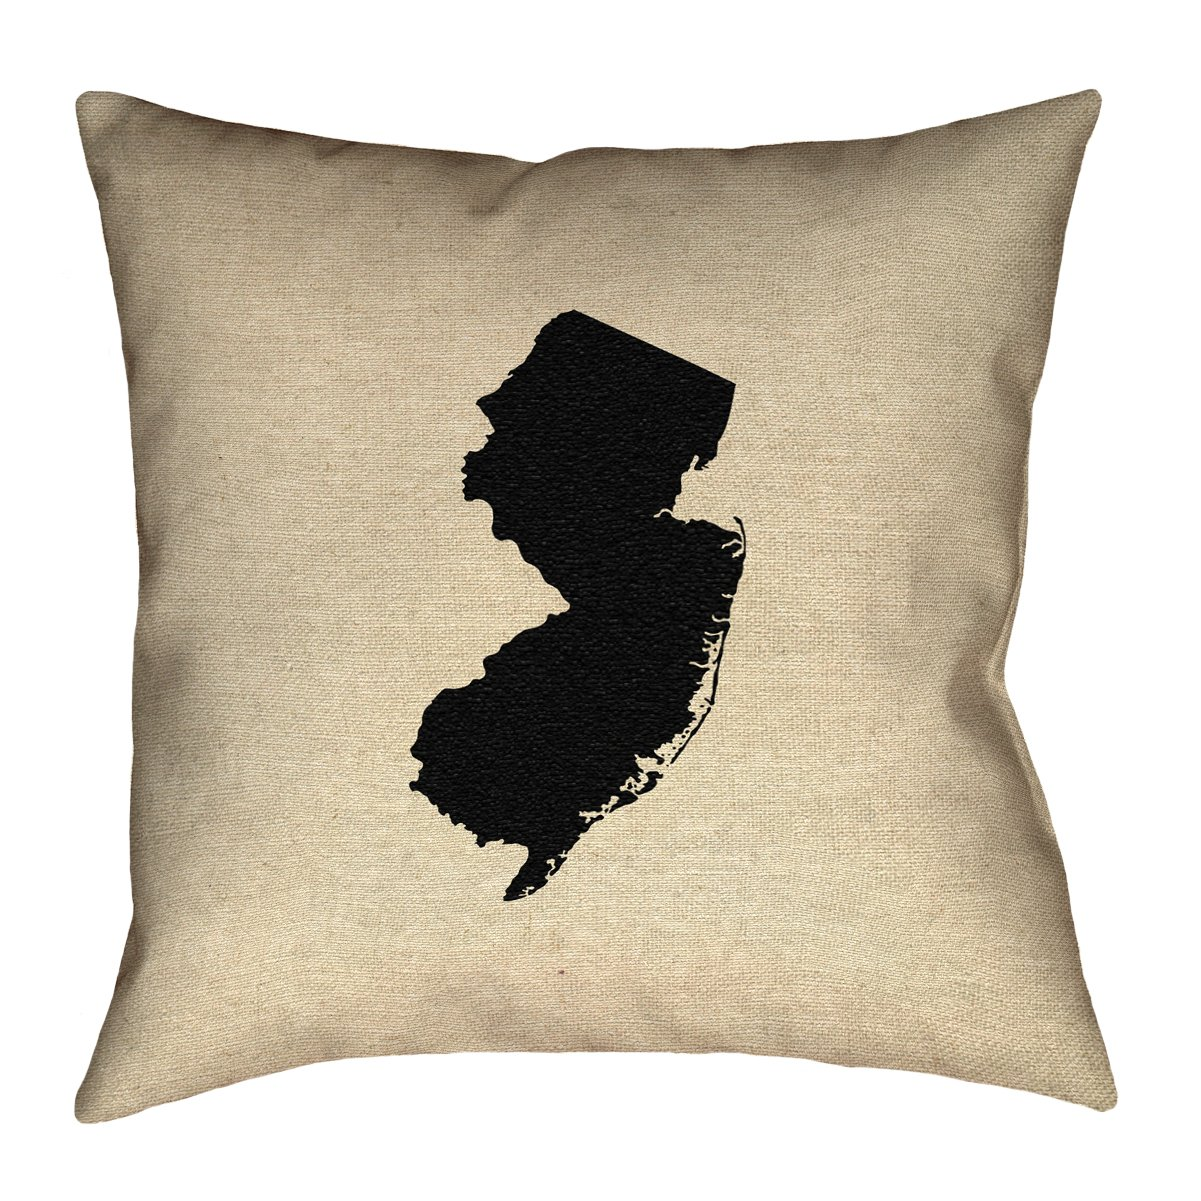 ArtVerse Katelyn Smith 18 x 18 Poly Twill Double Sided Print with Concealed Zipper /& Insert New Jersey Pillow